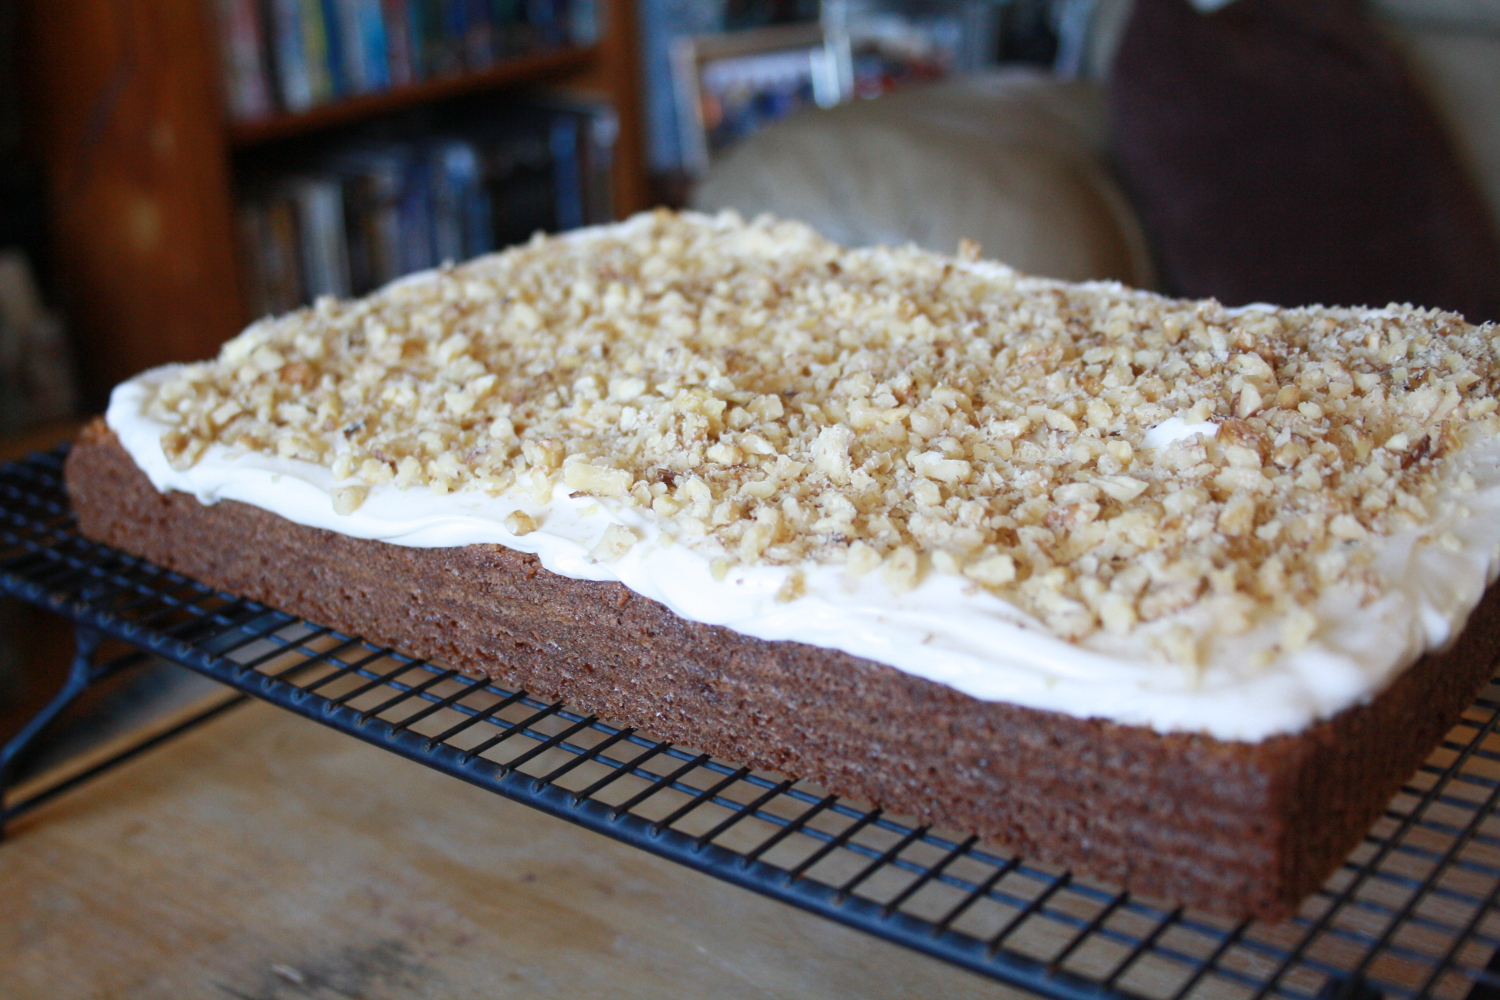 Carrot Cake with Cream Cheese Frosting | No Place Like Home